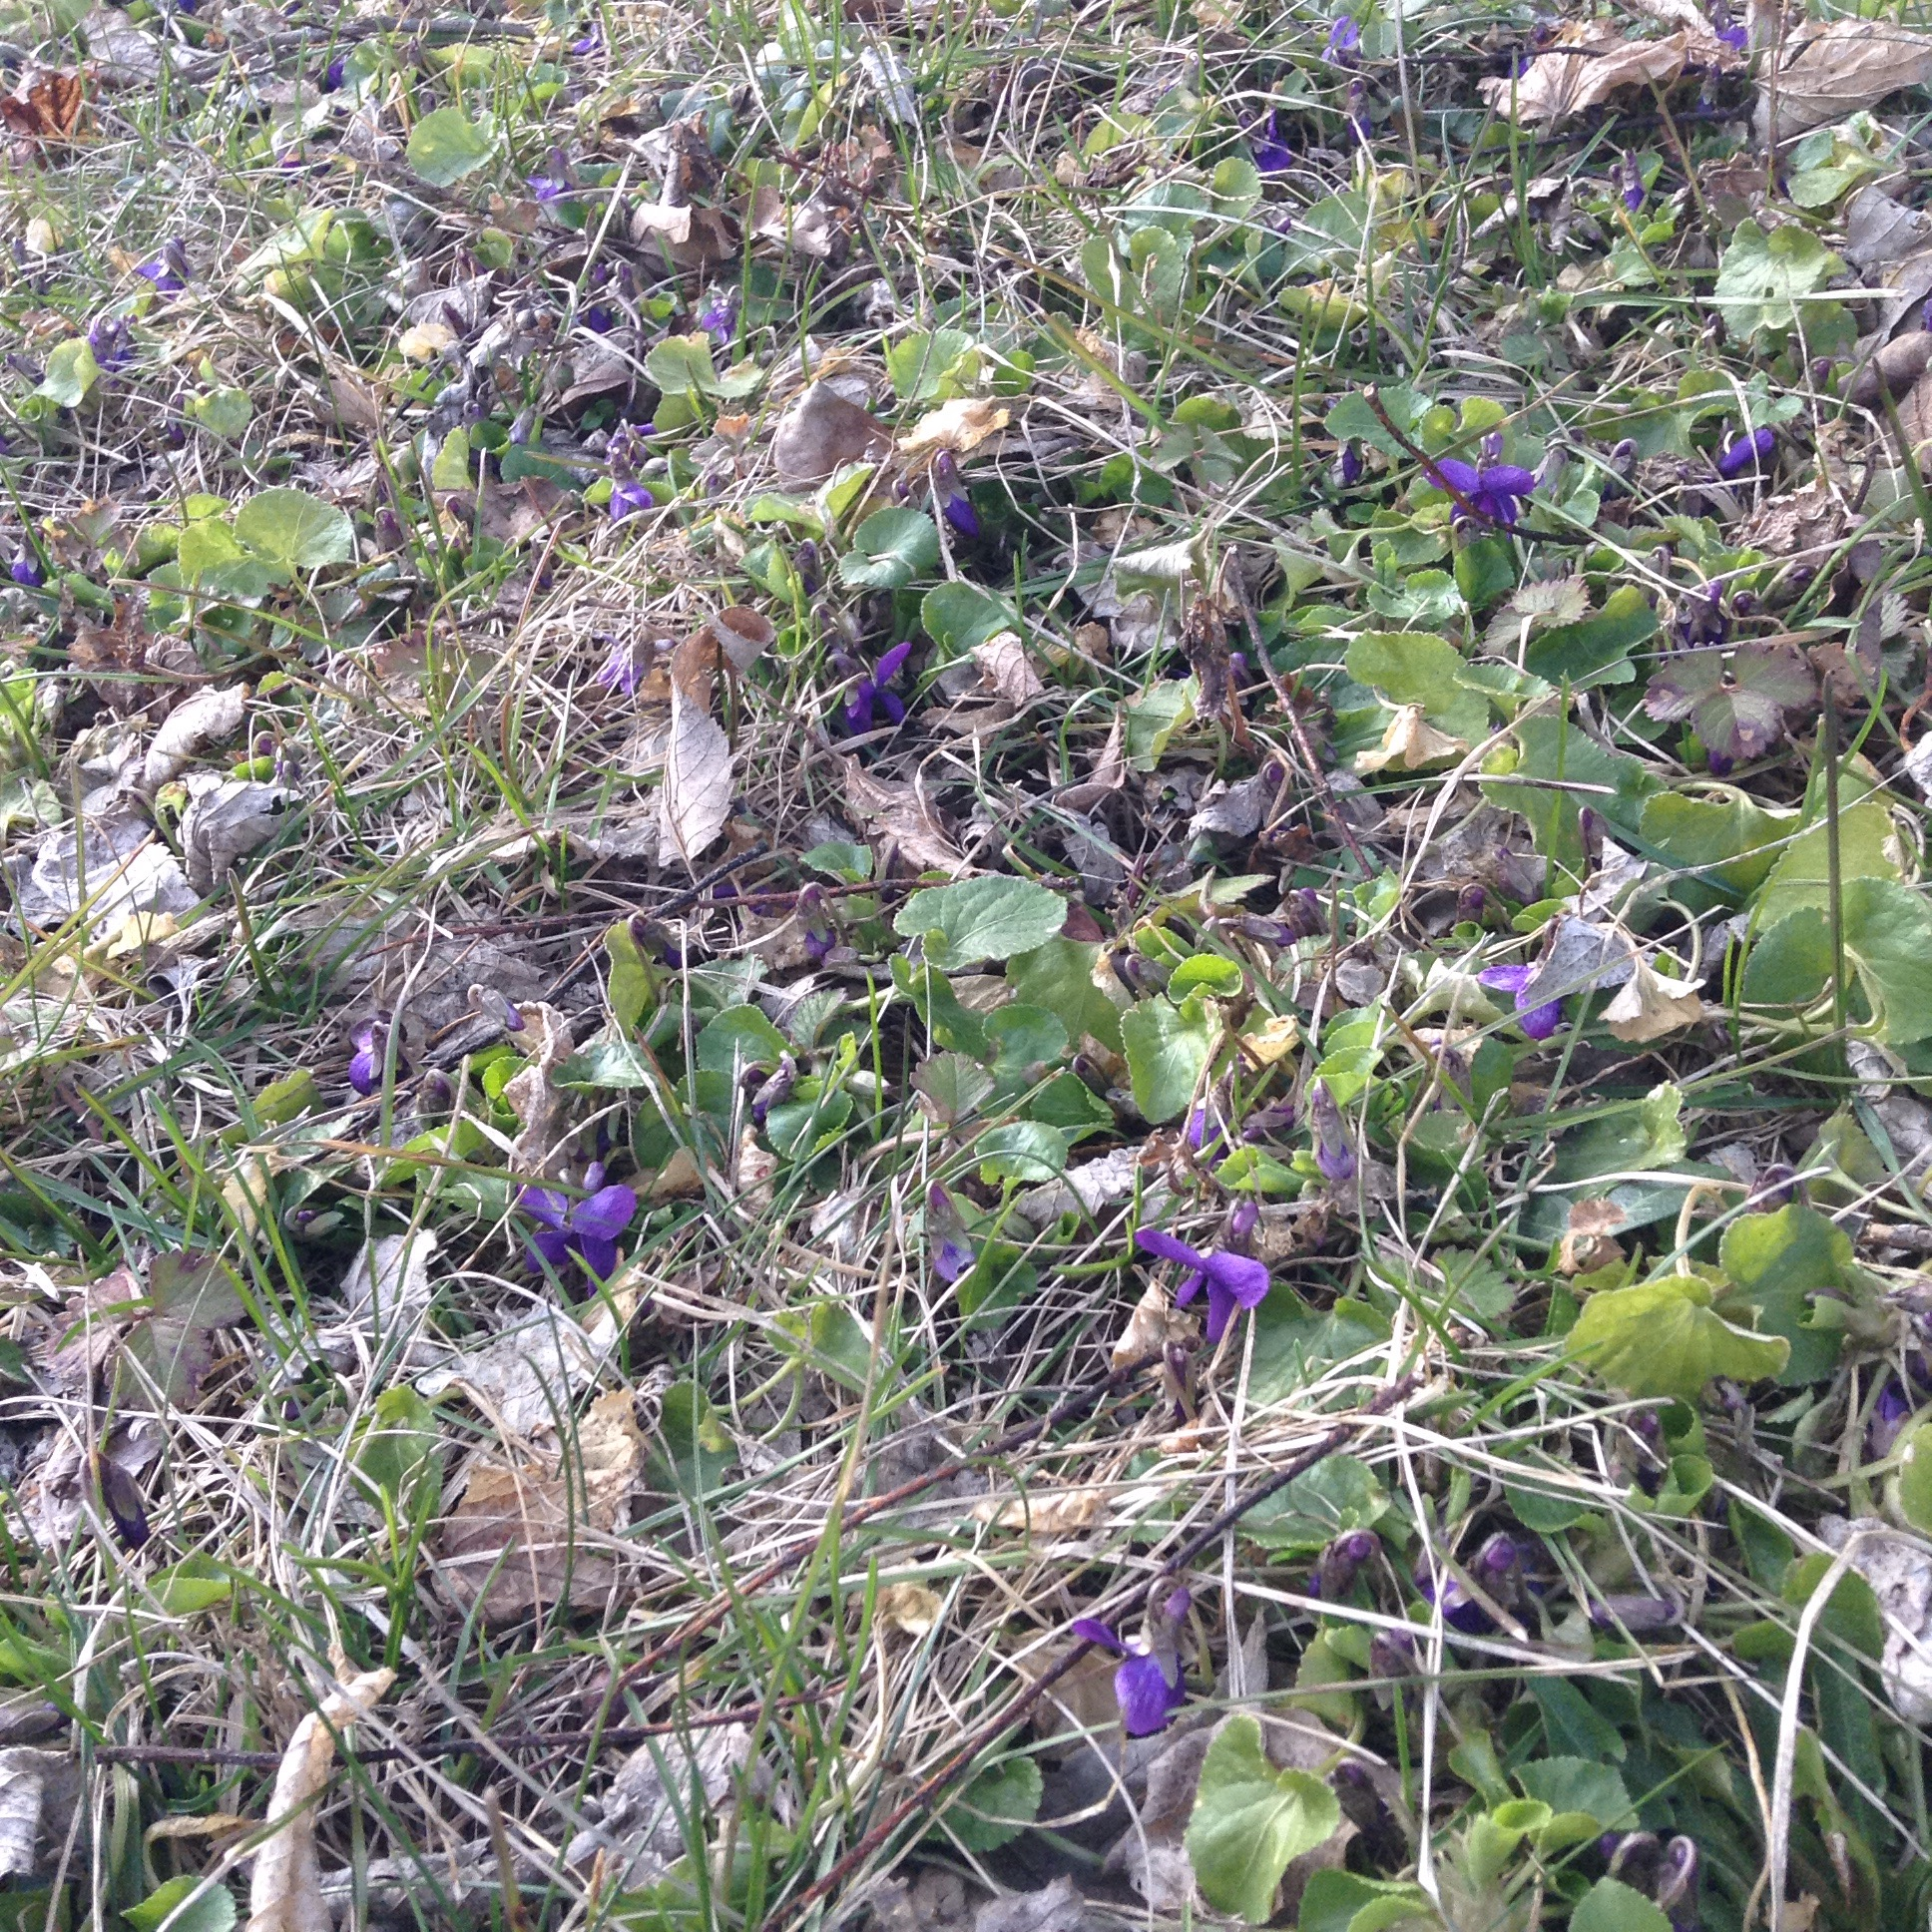 Violets peeking through